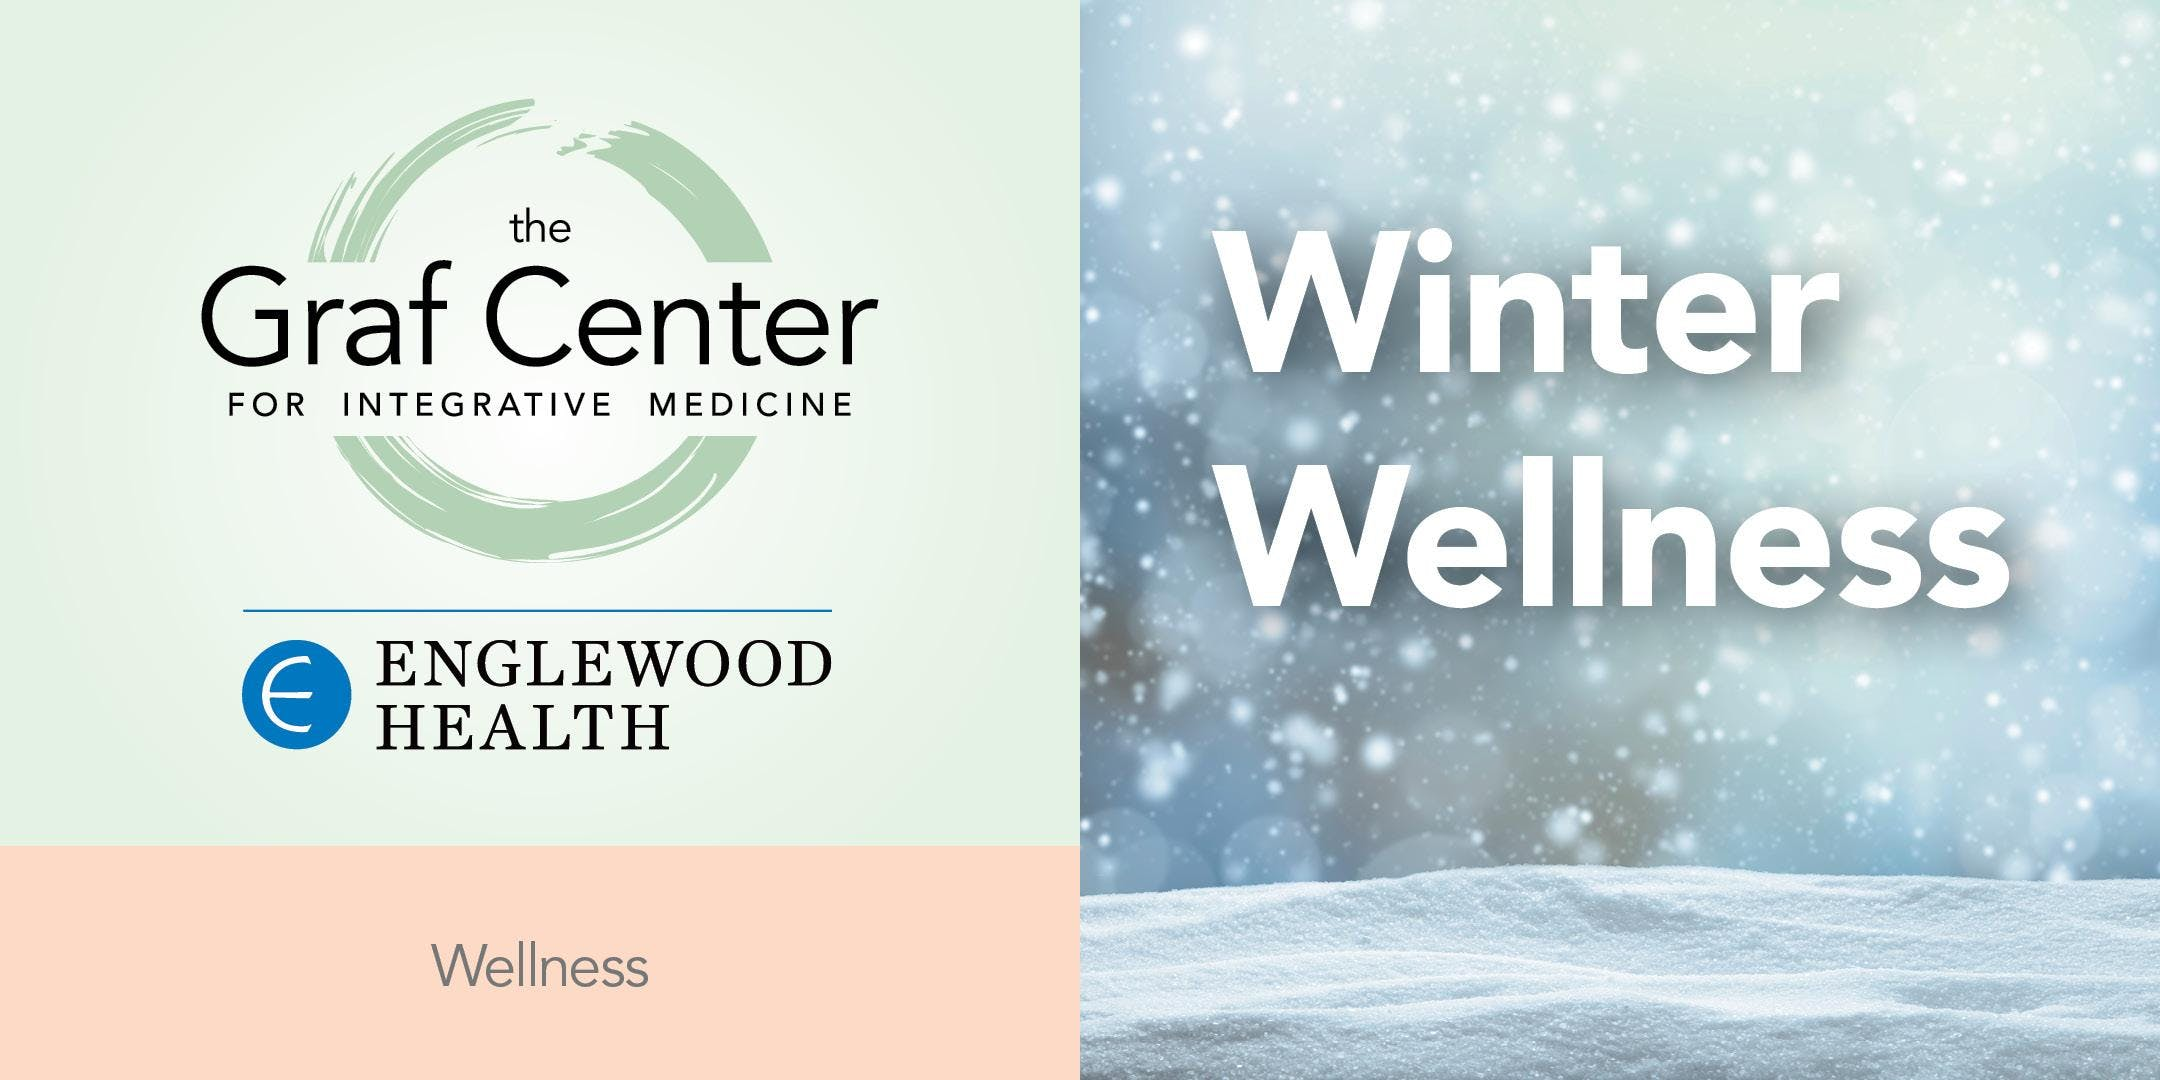 More info: Winter Wellness